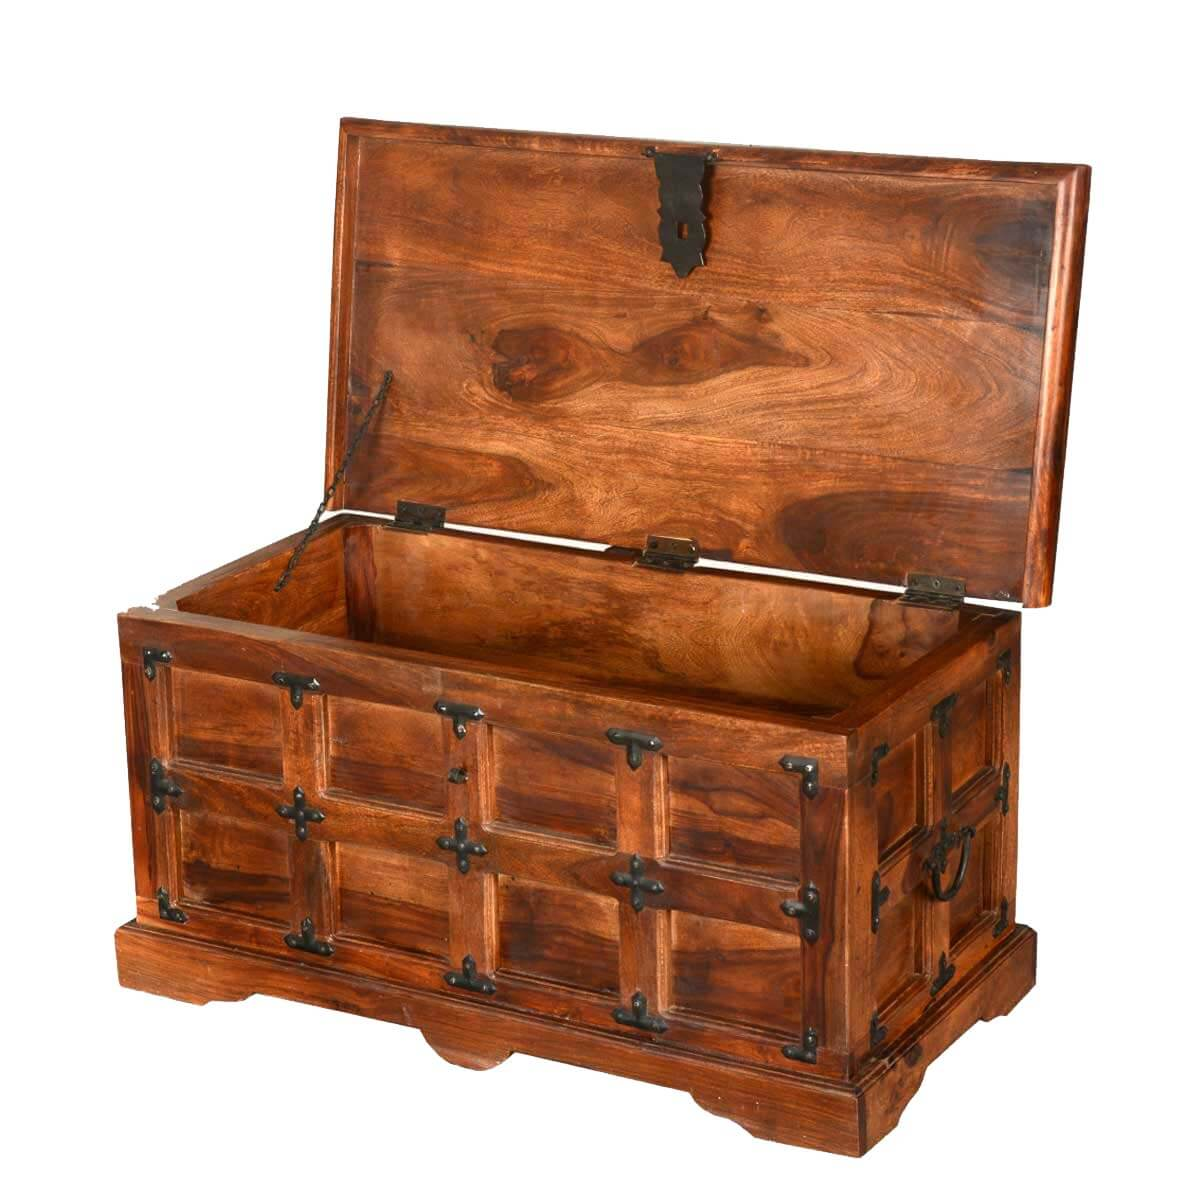 Beaufort solid rosewood with metal accents coffee table storage chest Metal chest coffee table